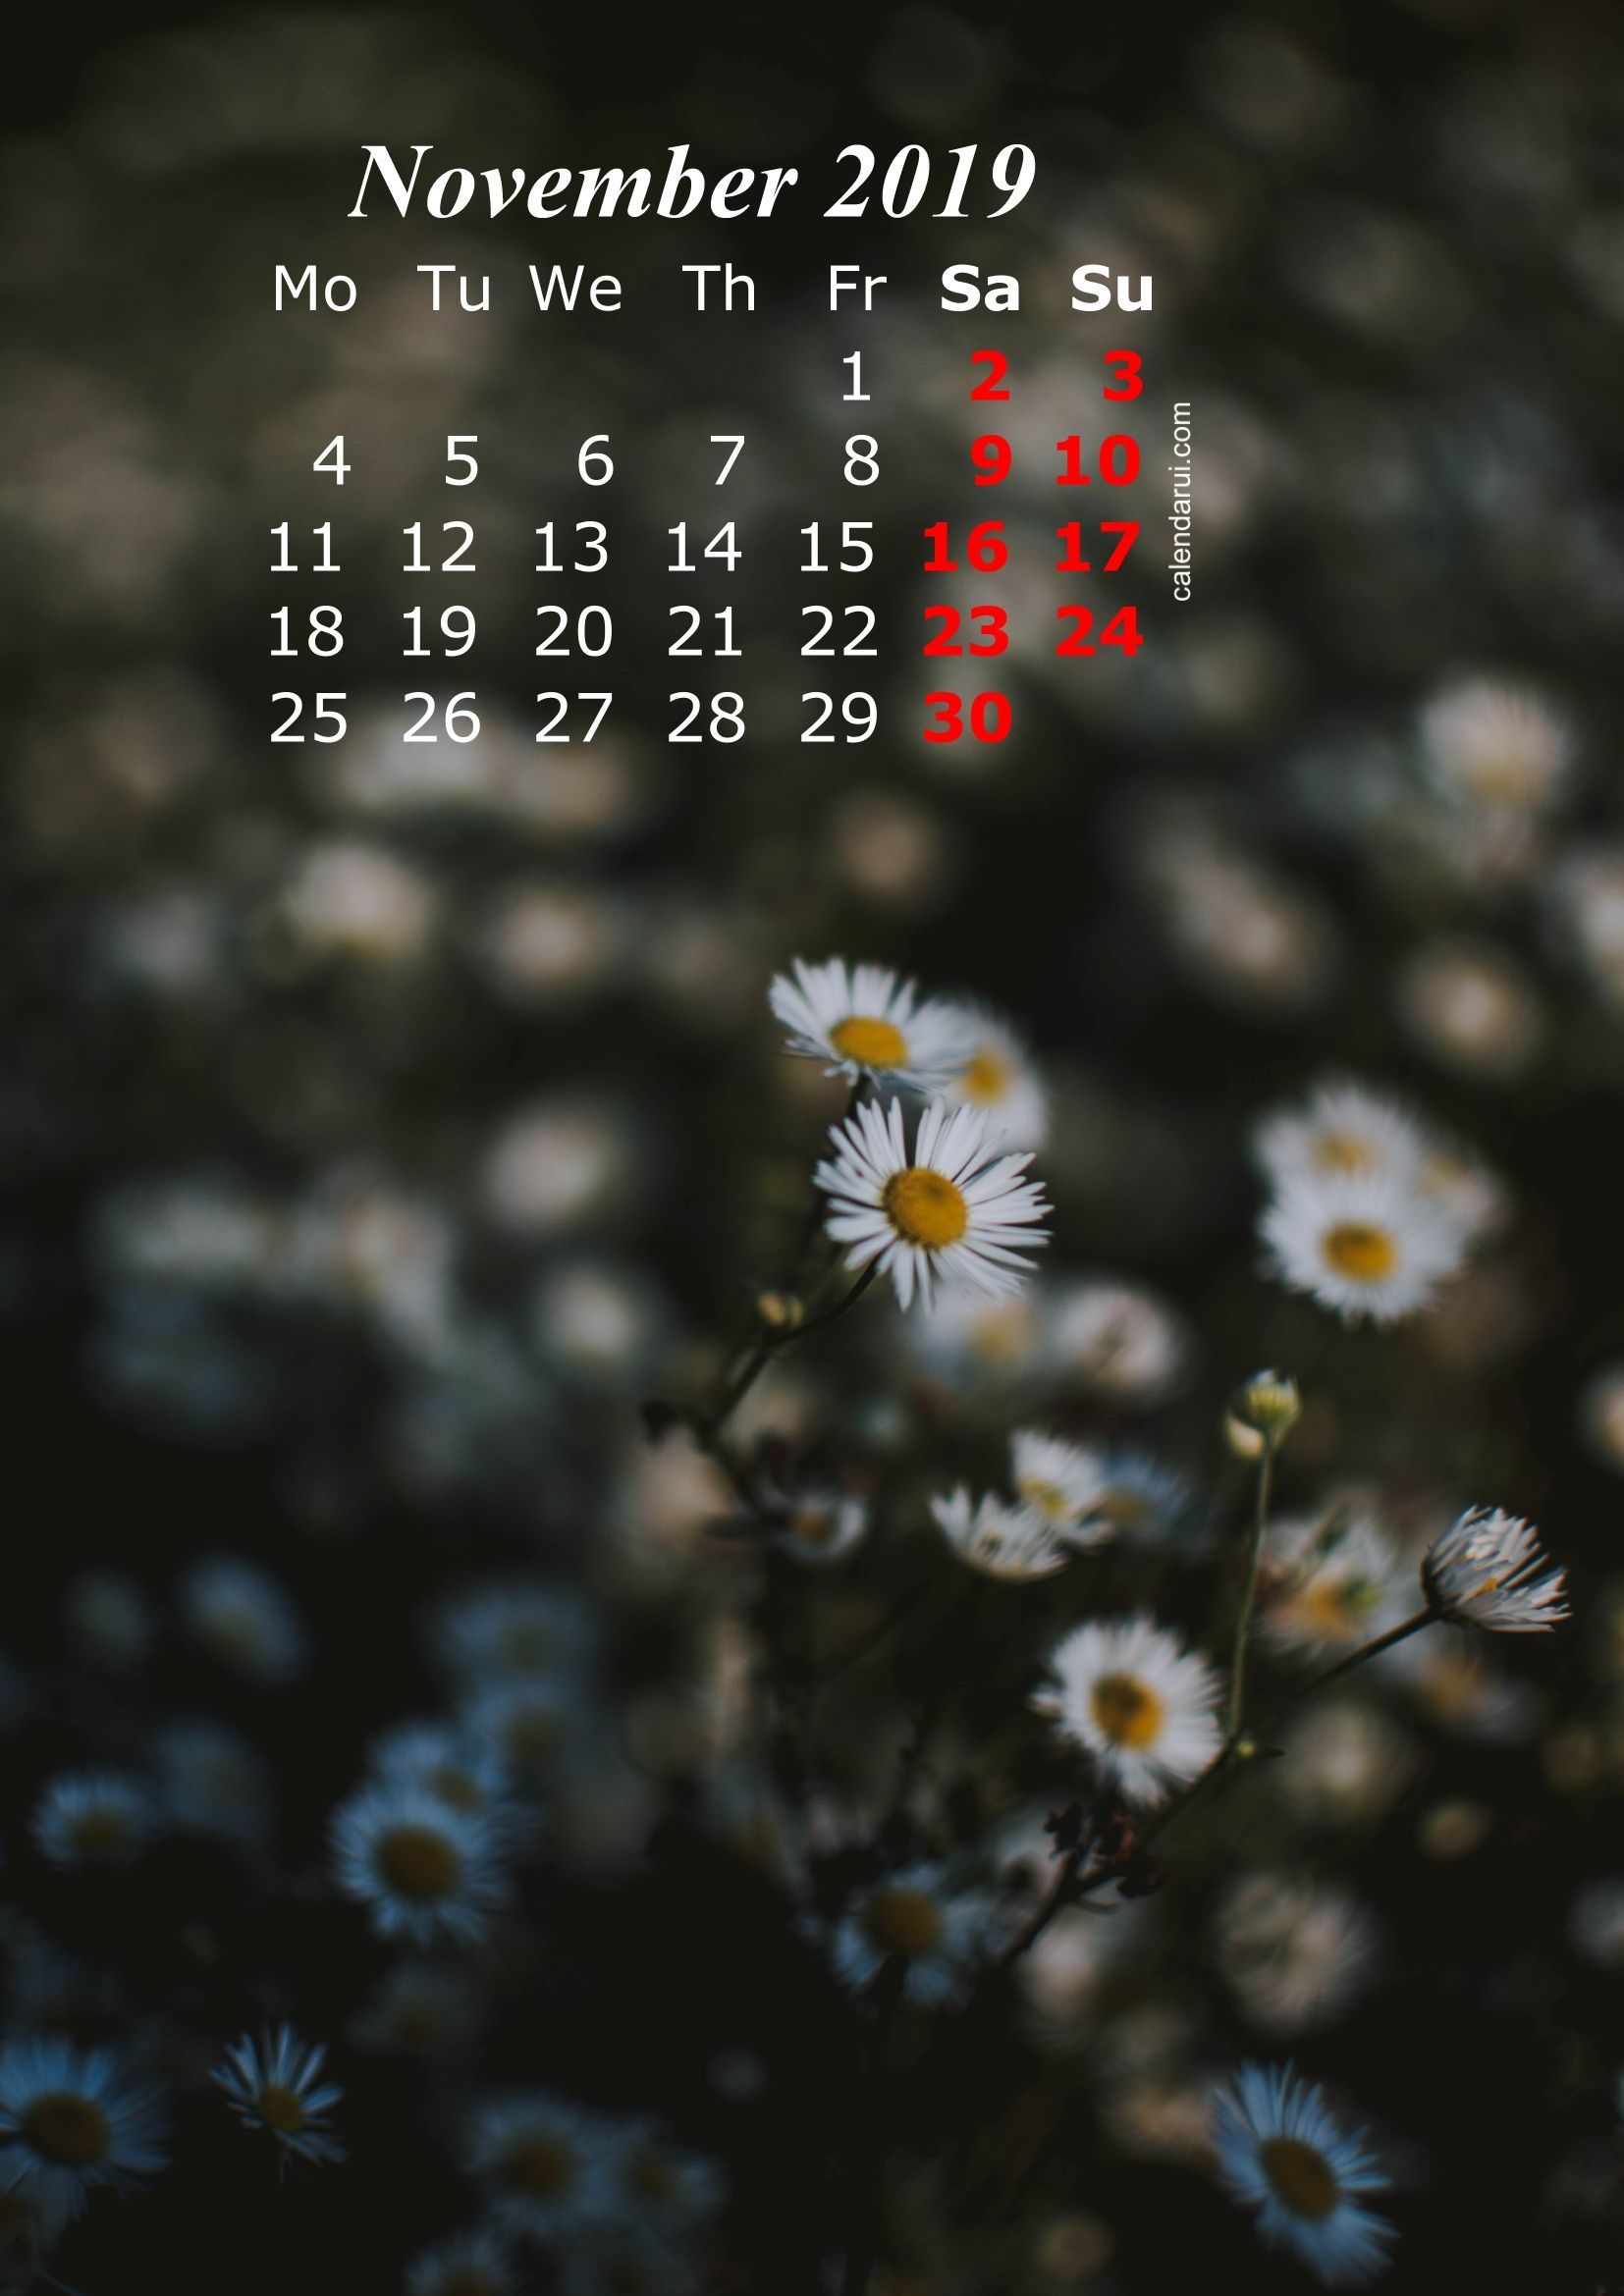 2019 Calendar Iphone Wallpaper Hd Calendar Wallpaper 2019